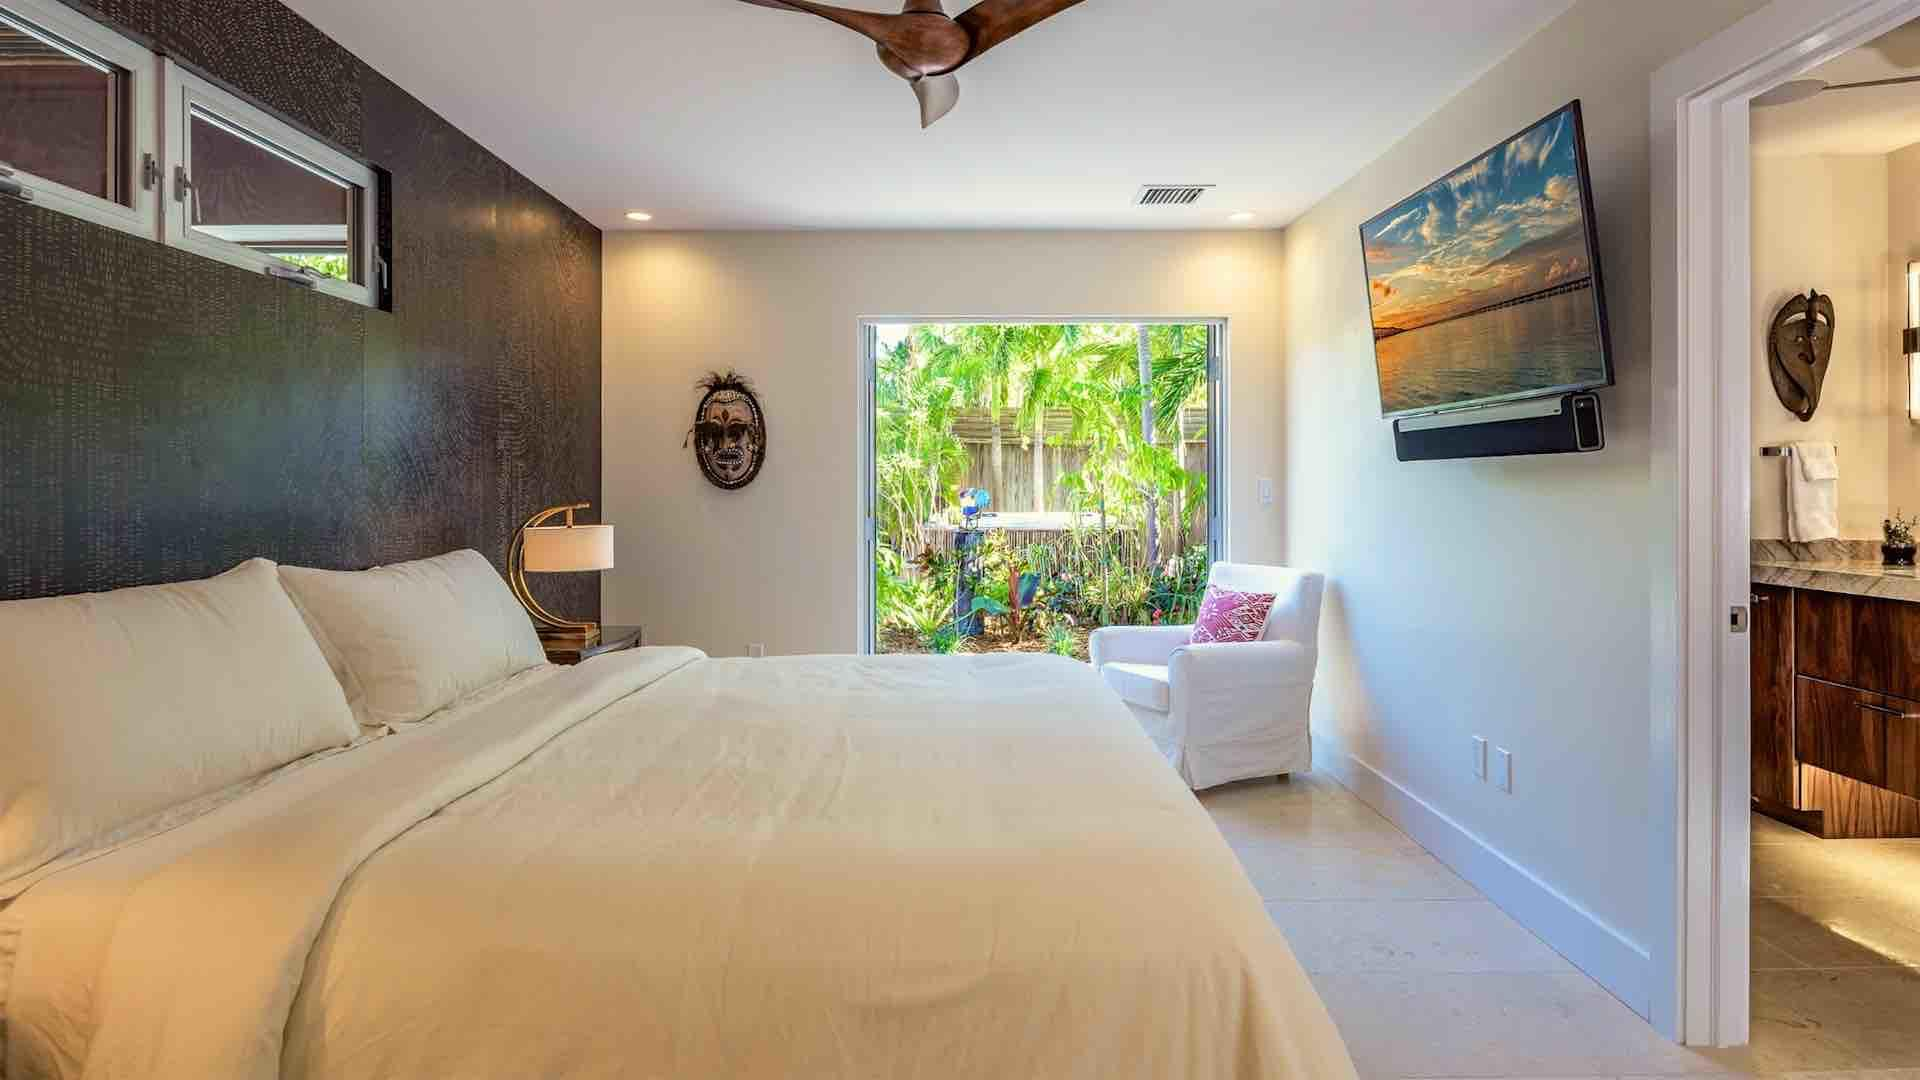 The master bedroom also has a large flat screen TV and offers direct access to the pool area...